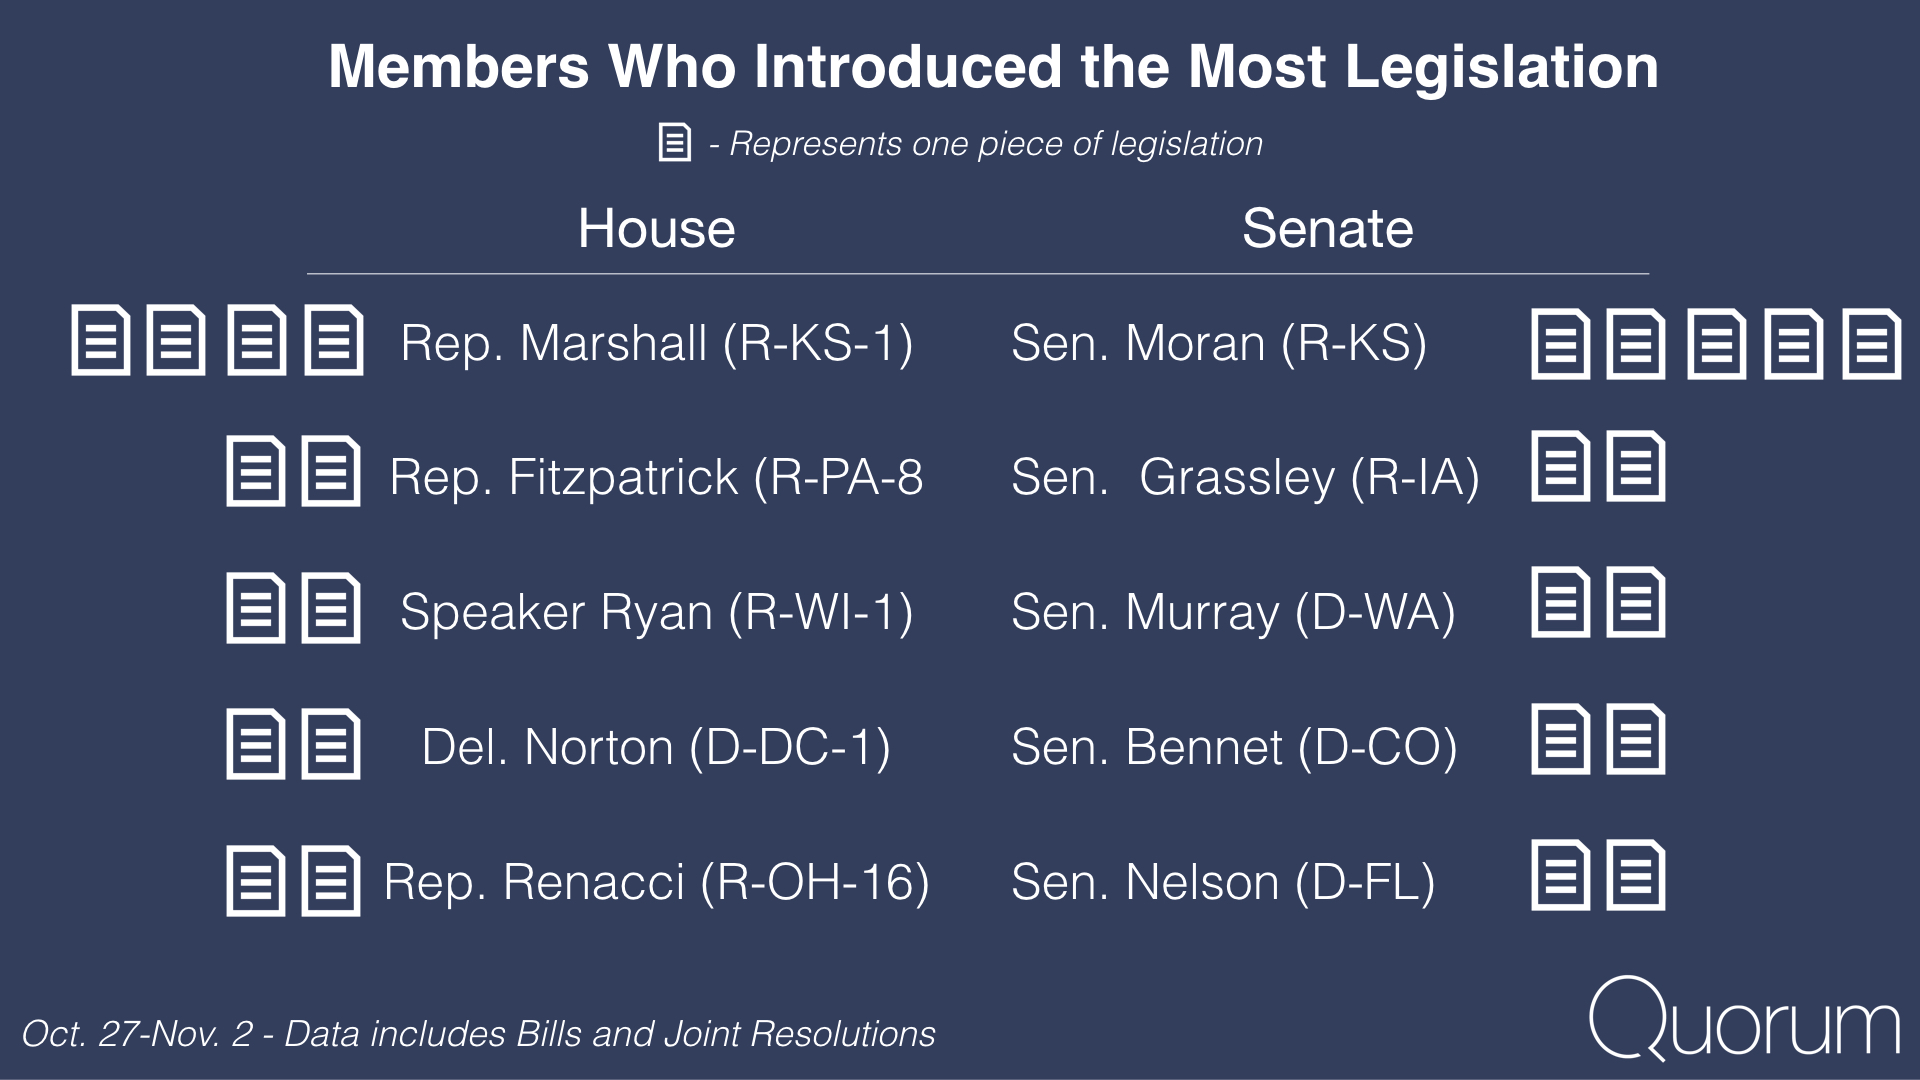 Members who introduced the most legislation.